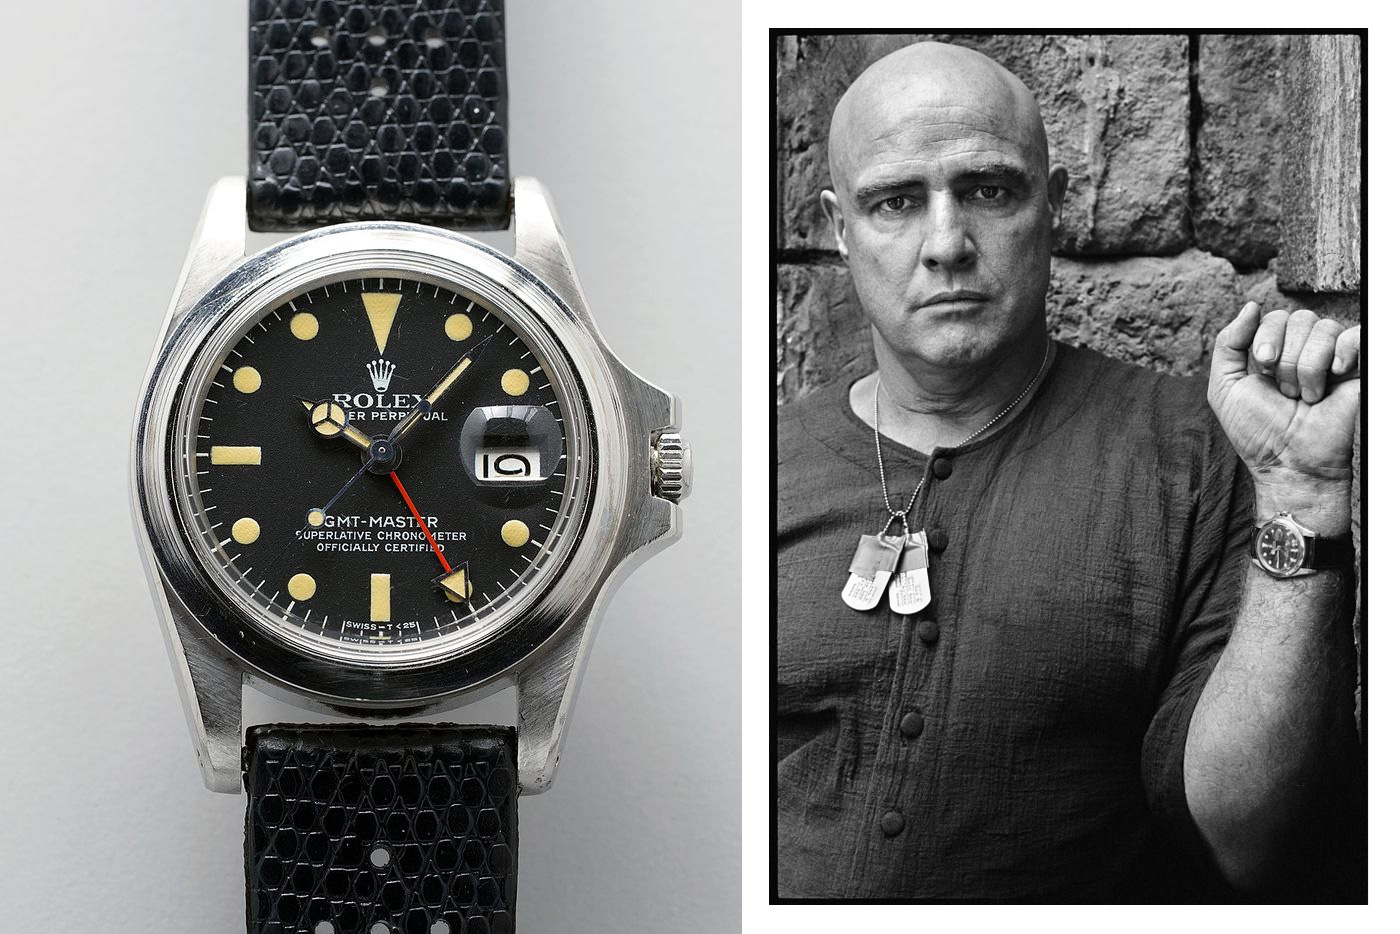 Brando's <i>Apocalypse Now</i> Rolex Will Soon Be Up For Auction at werd.com